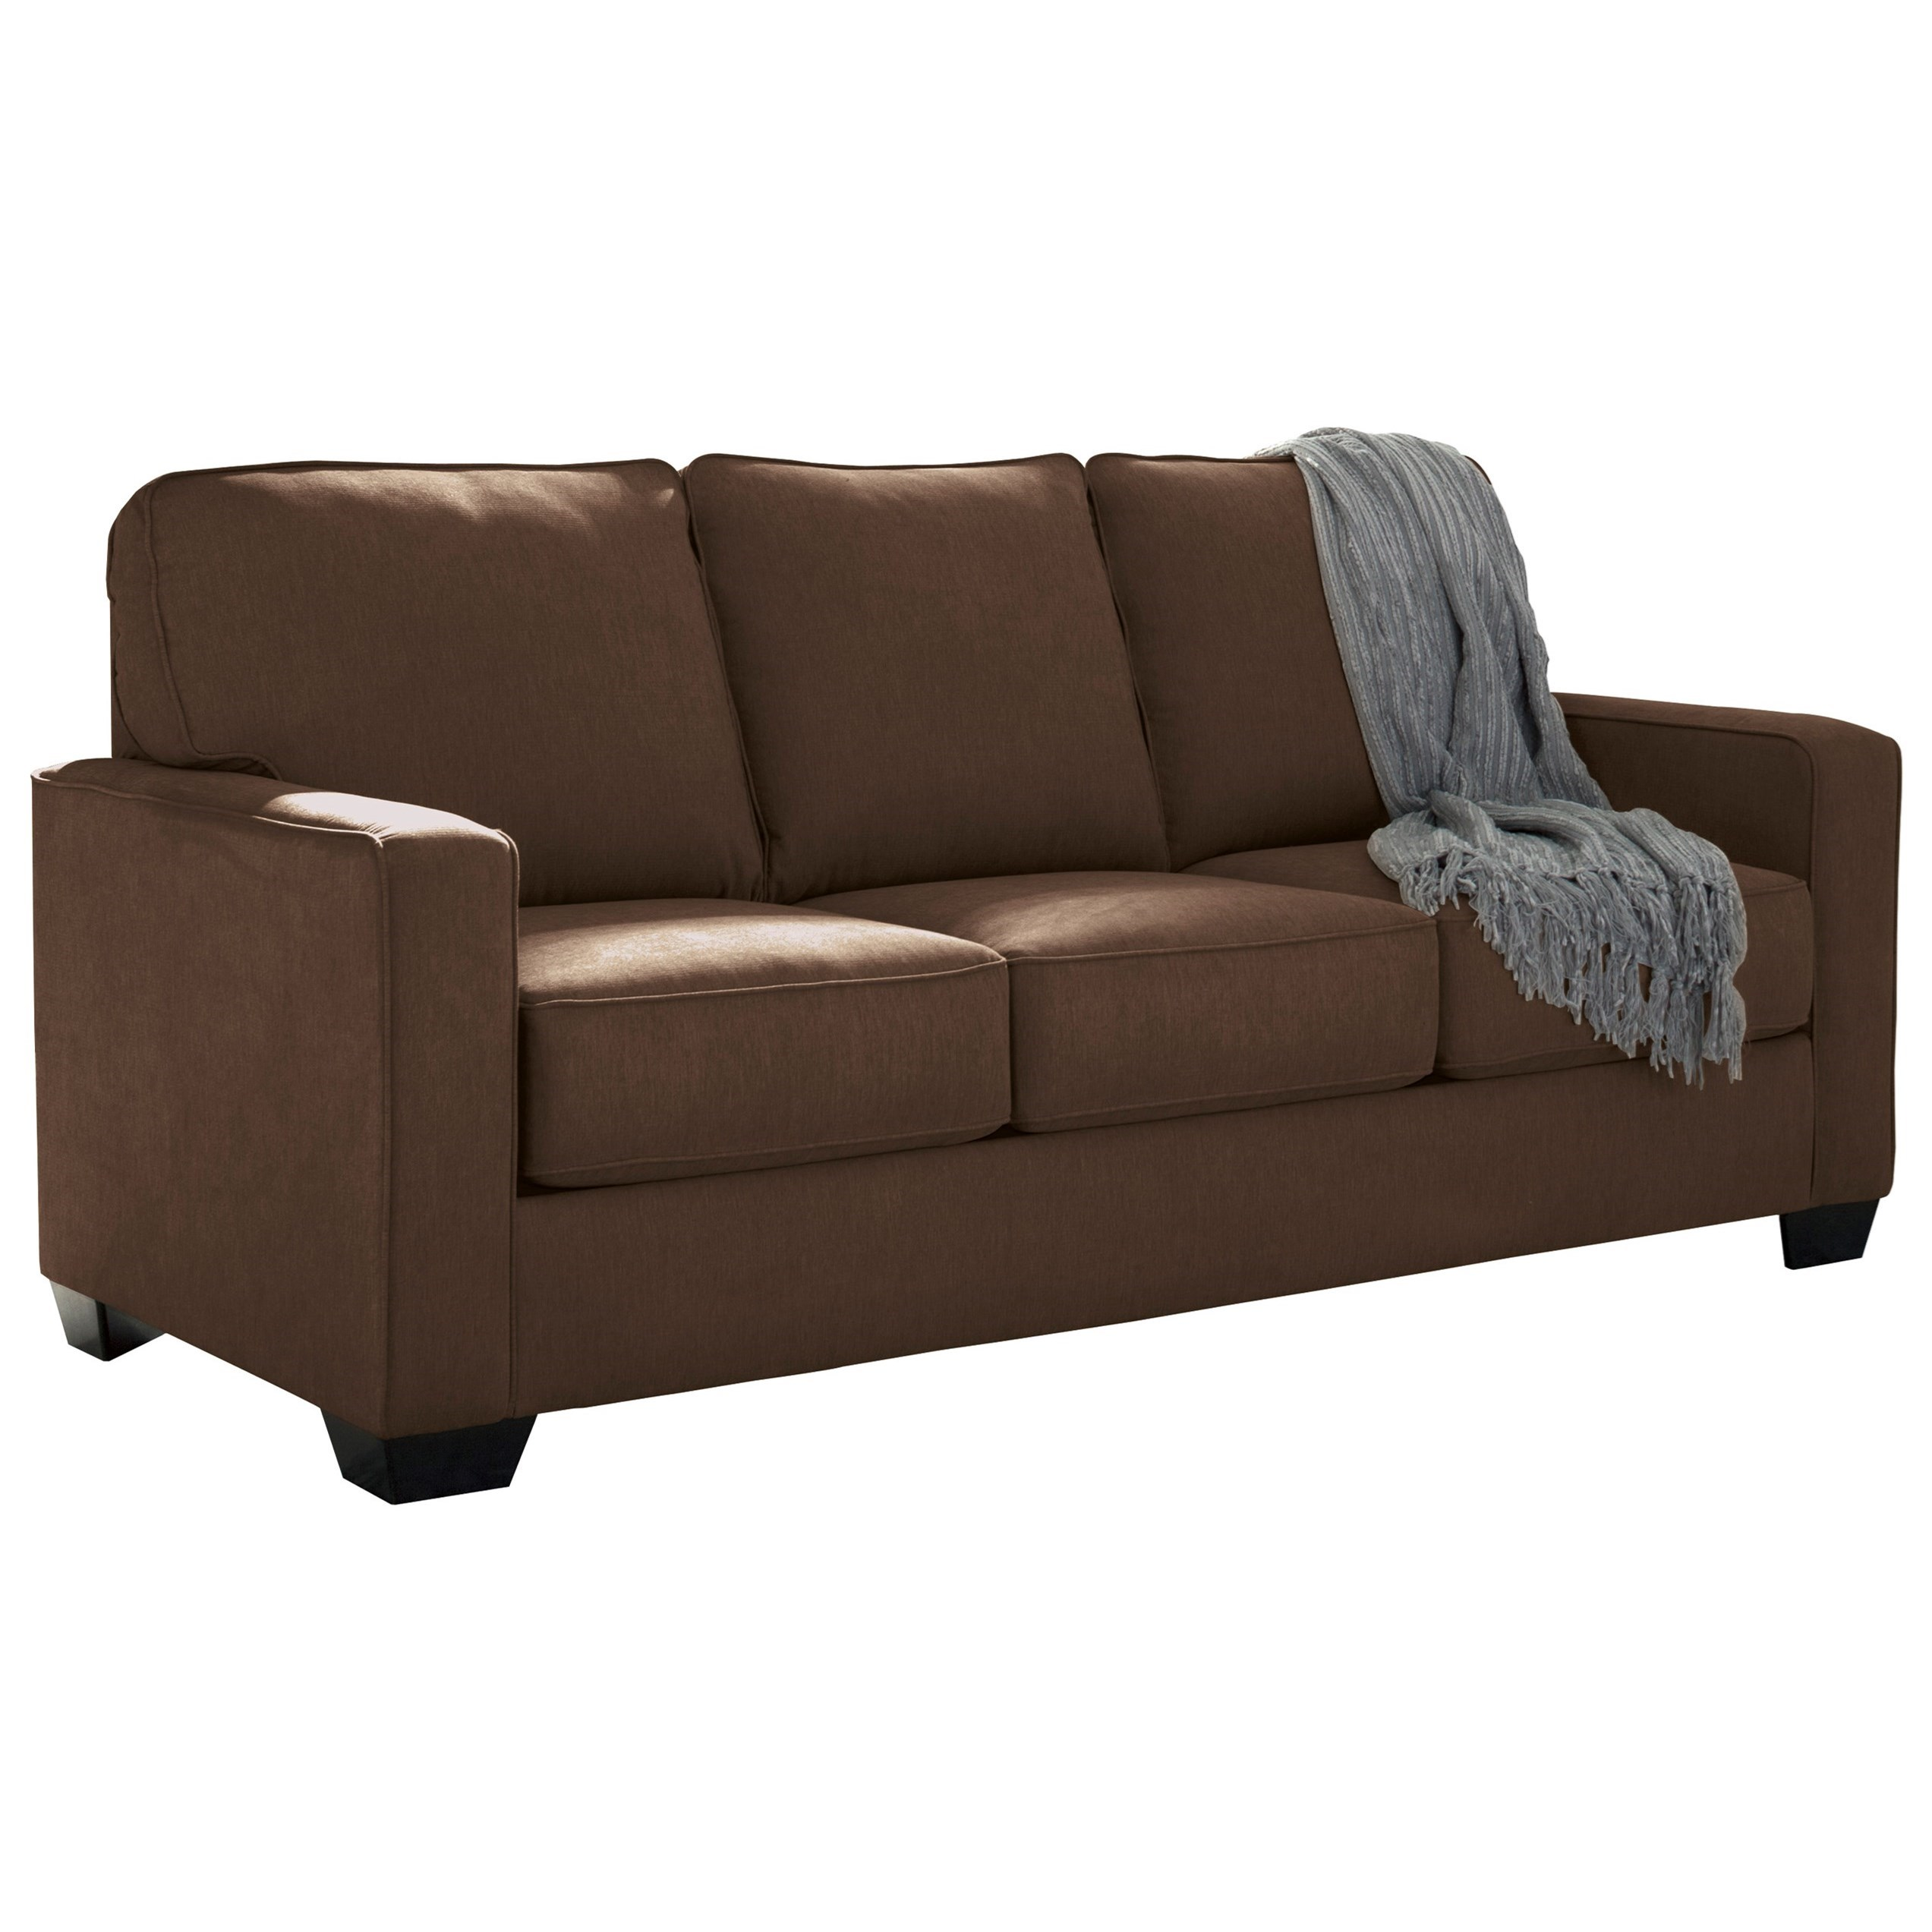 sleeper sofa comparison 2 seater size in inches signature design by ashley zeb 3590336 full